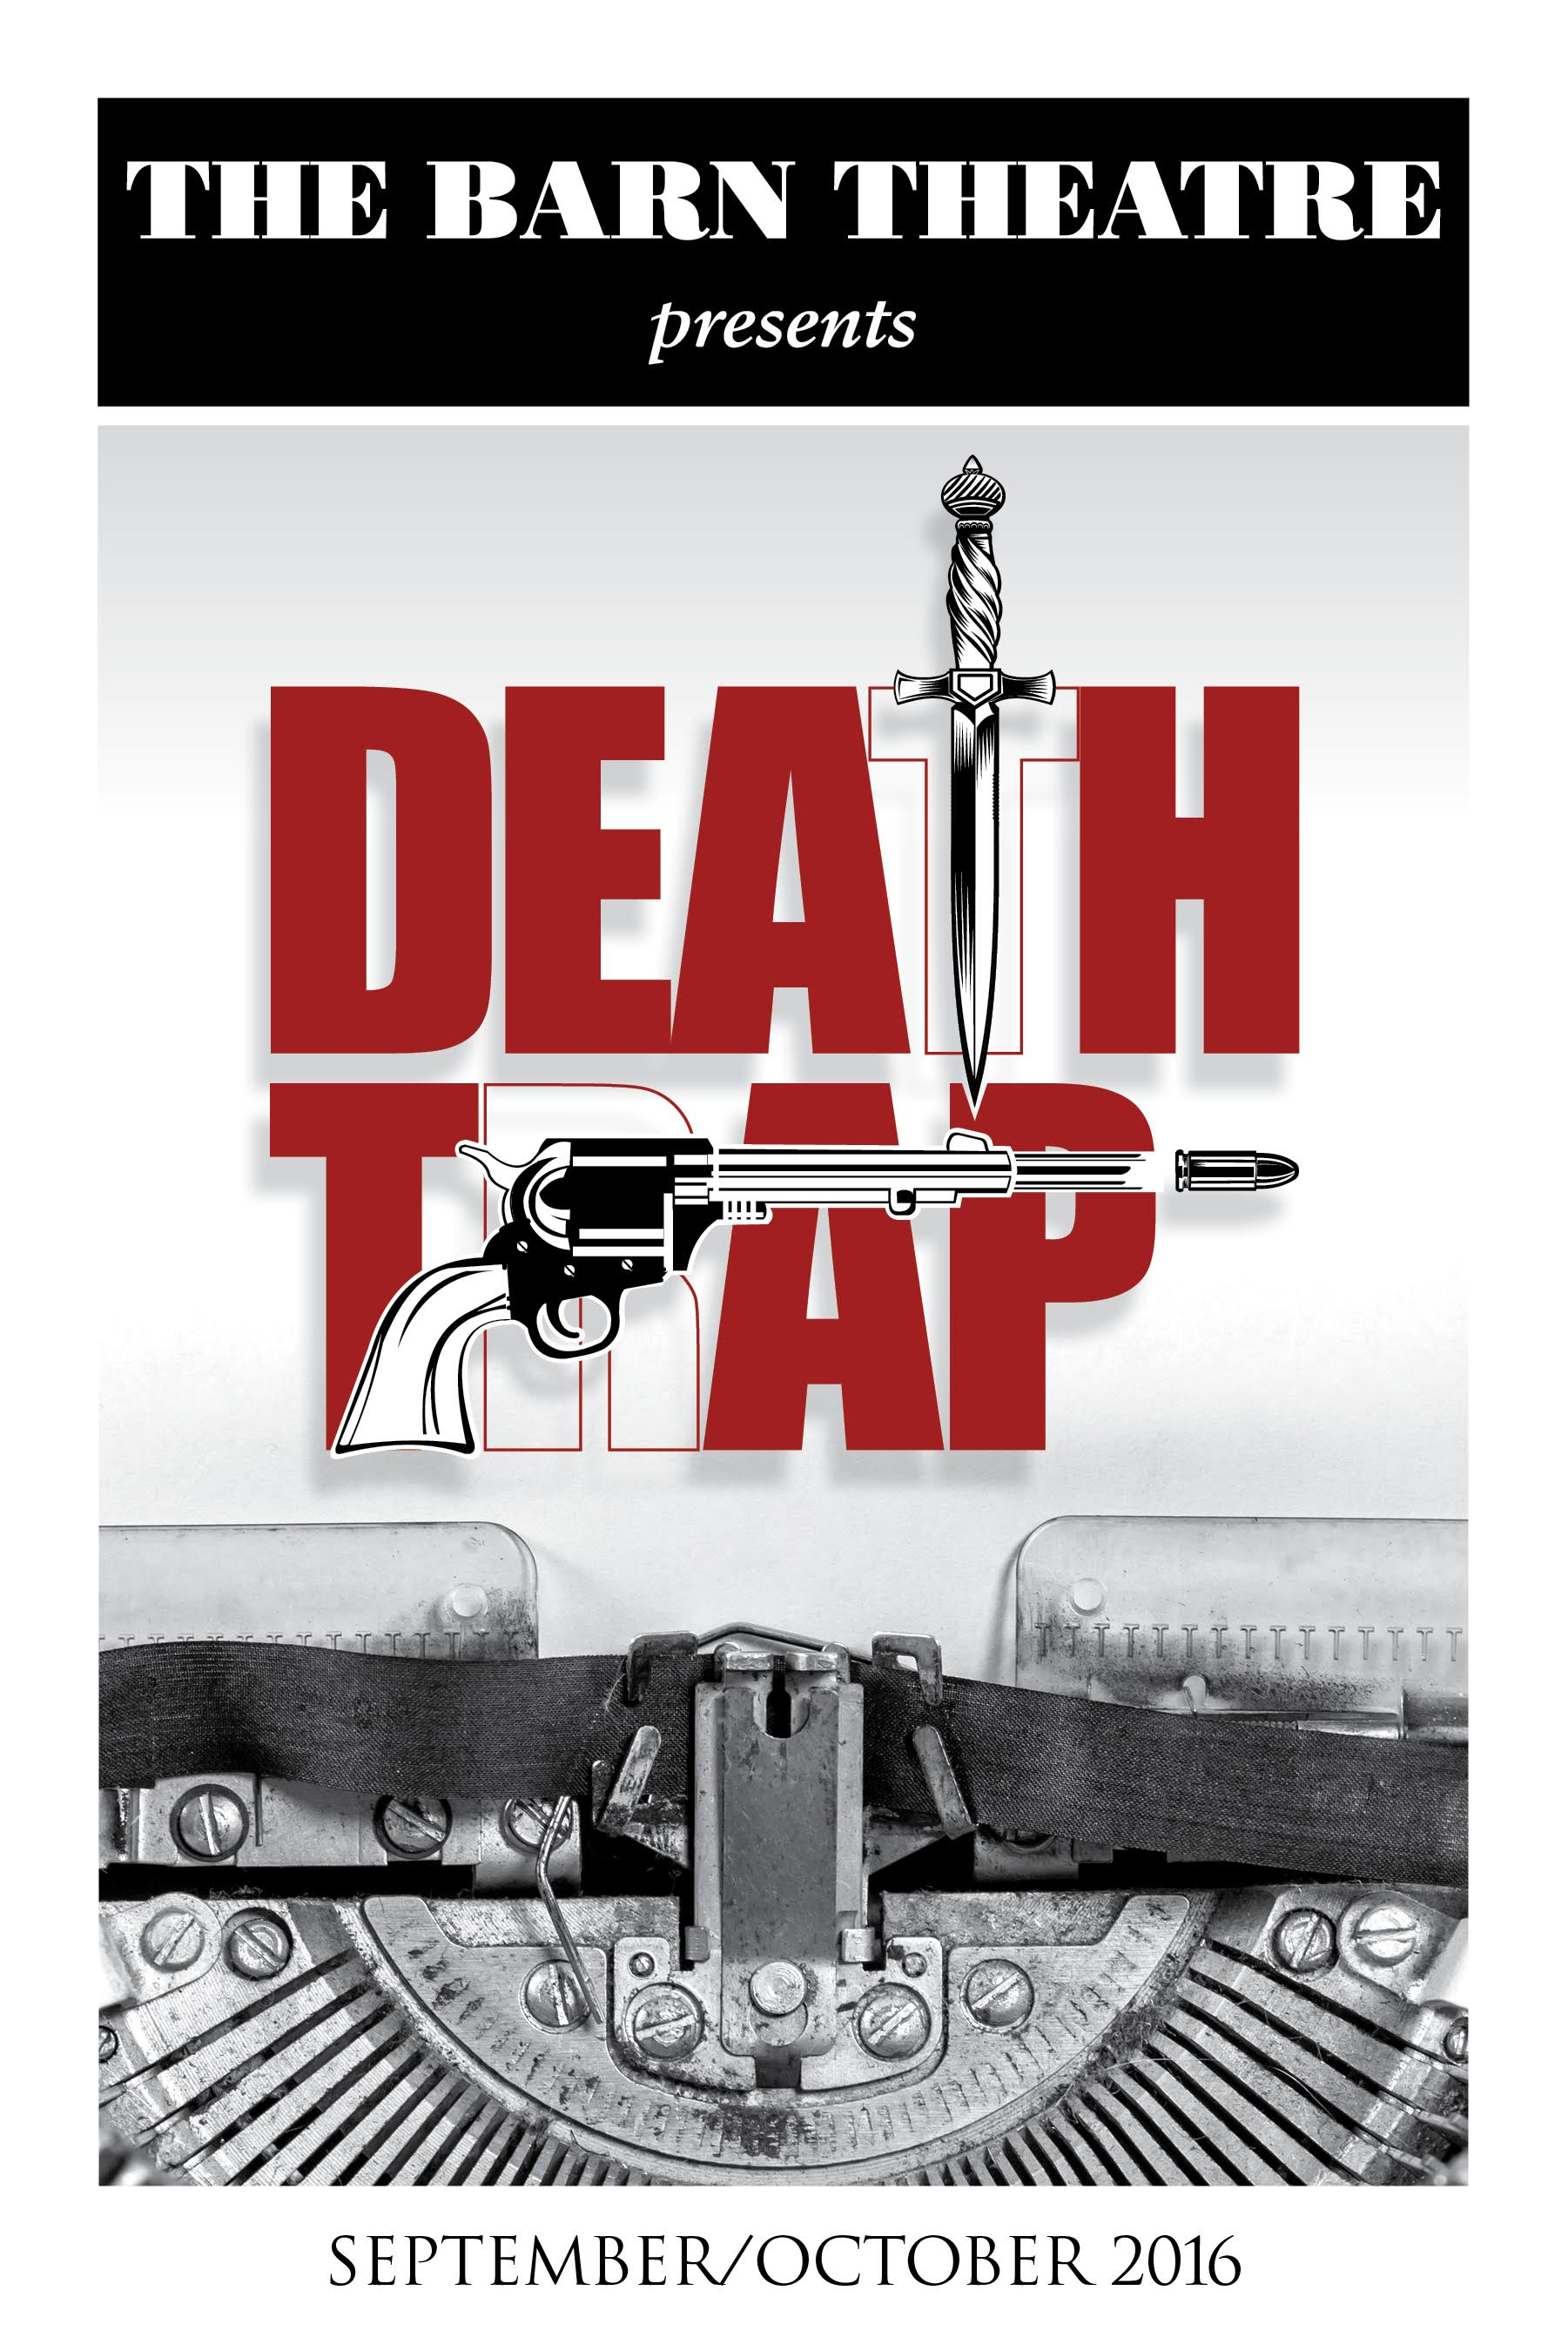 Program Cover for Deathtrap